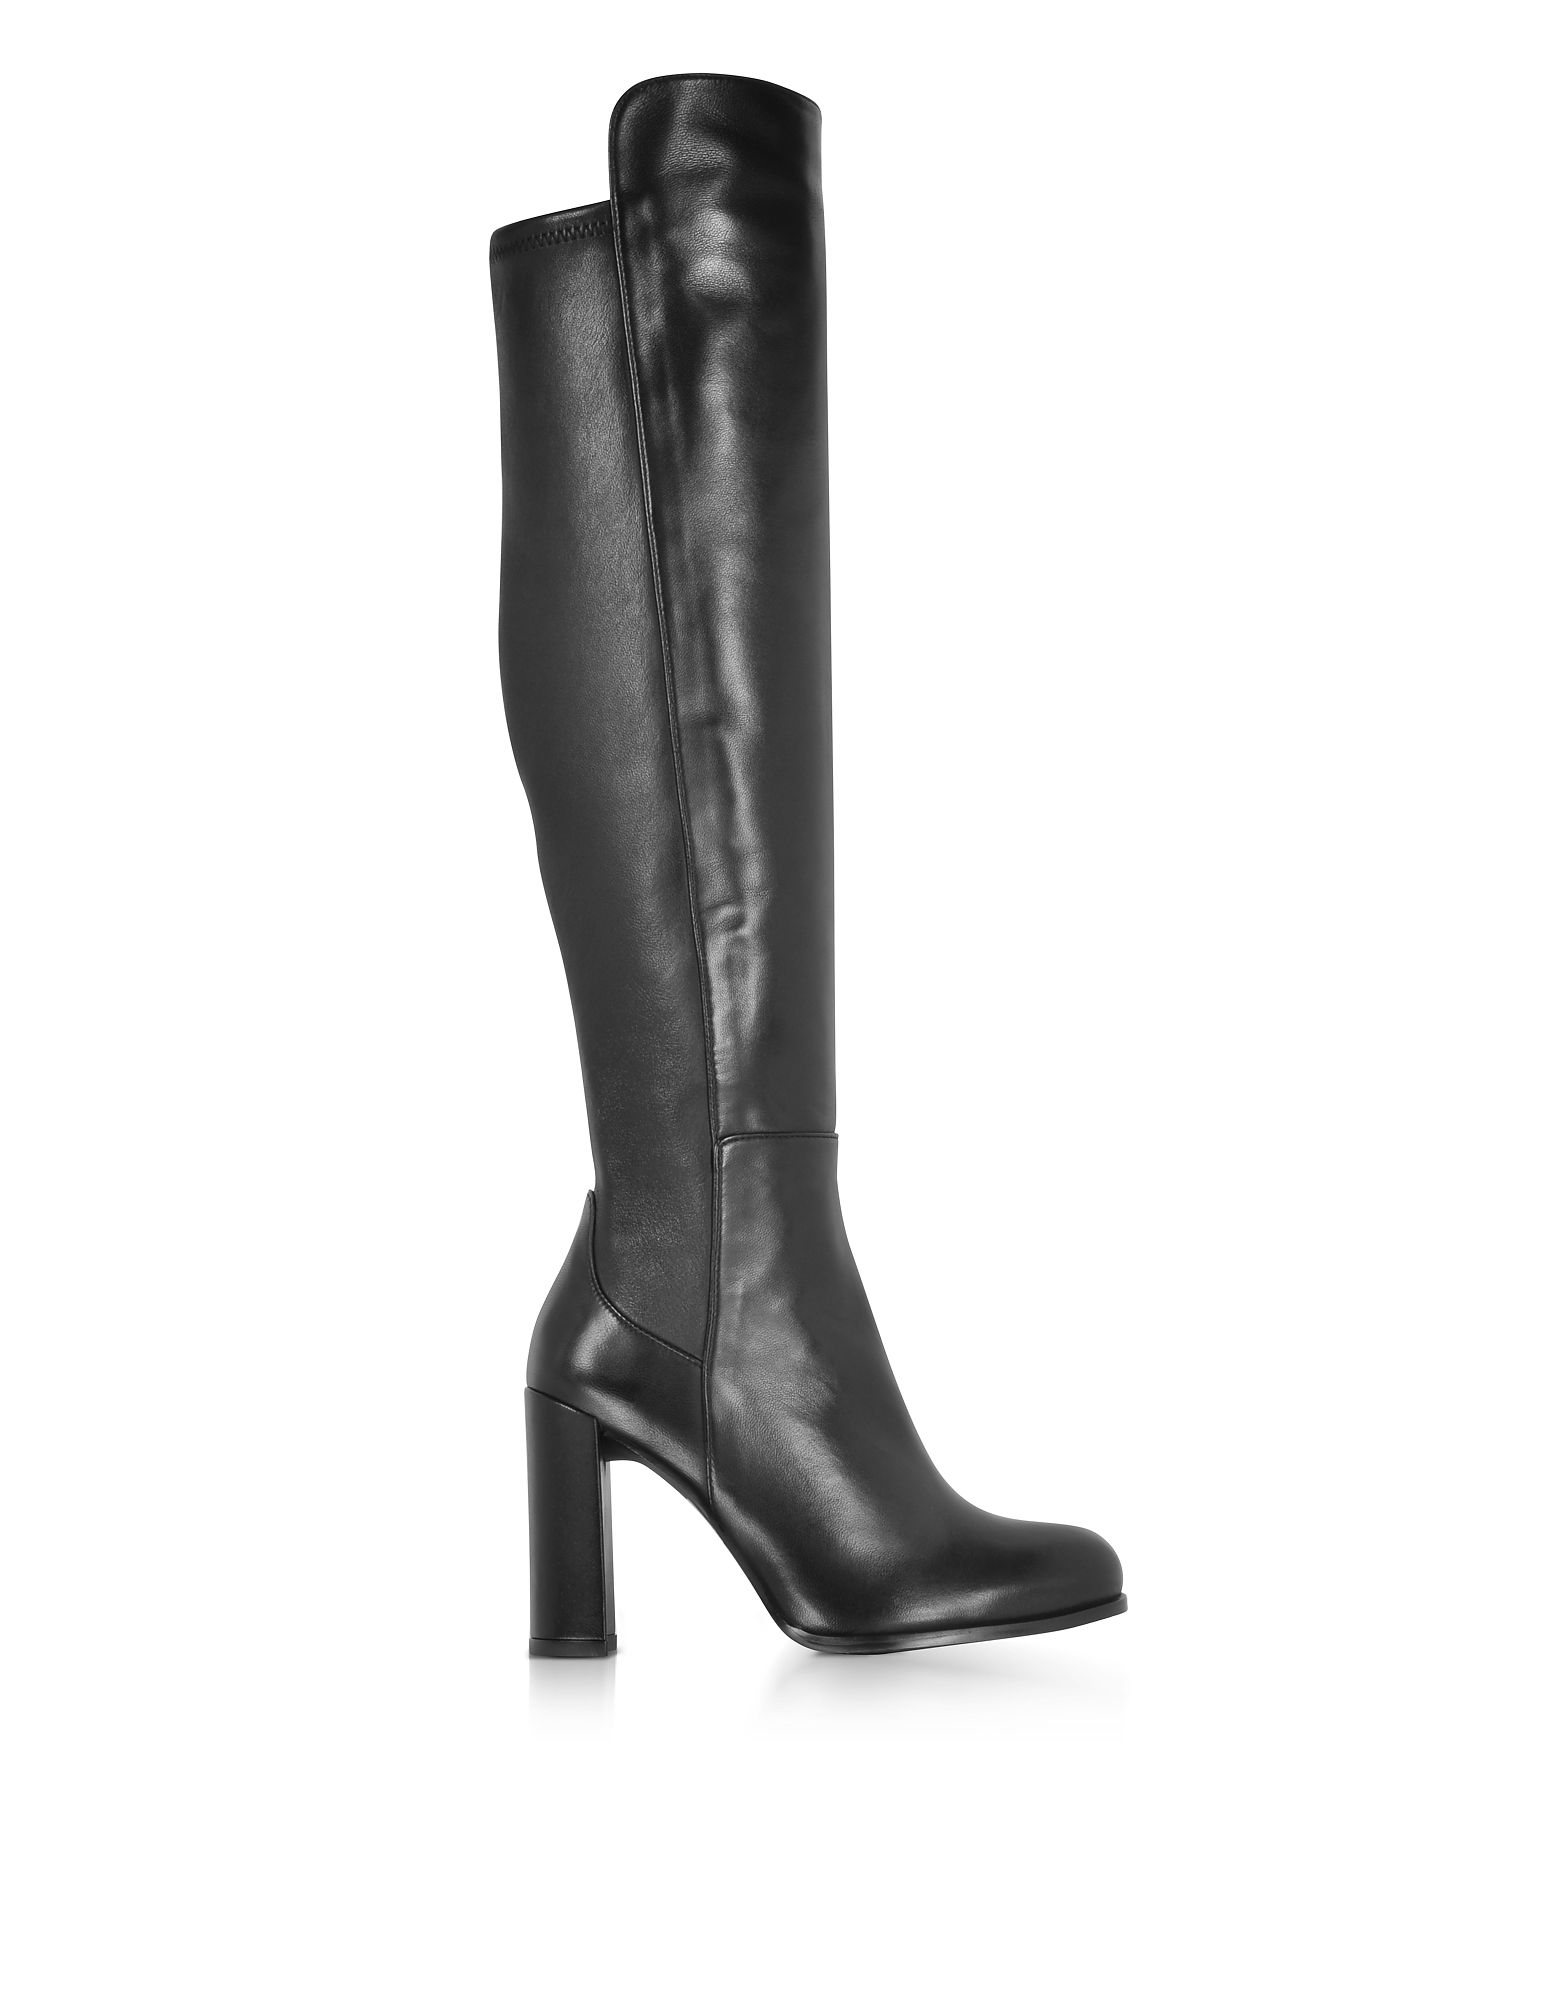 Stuart Weitzman Alljill Black Stretch Leather High Heel Over The Knee Boots